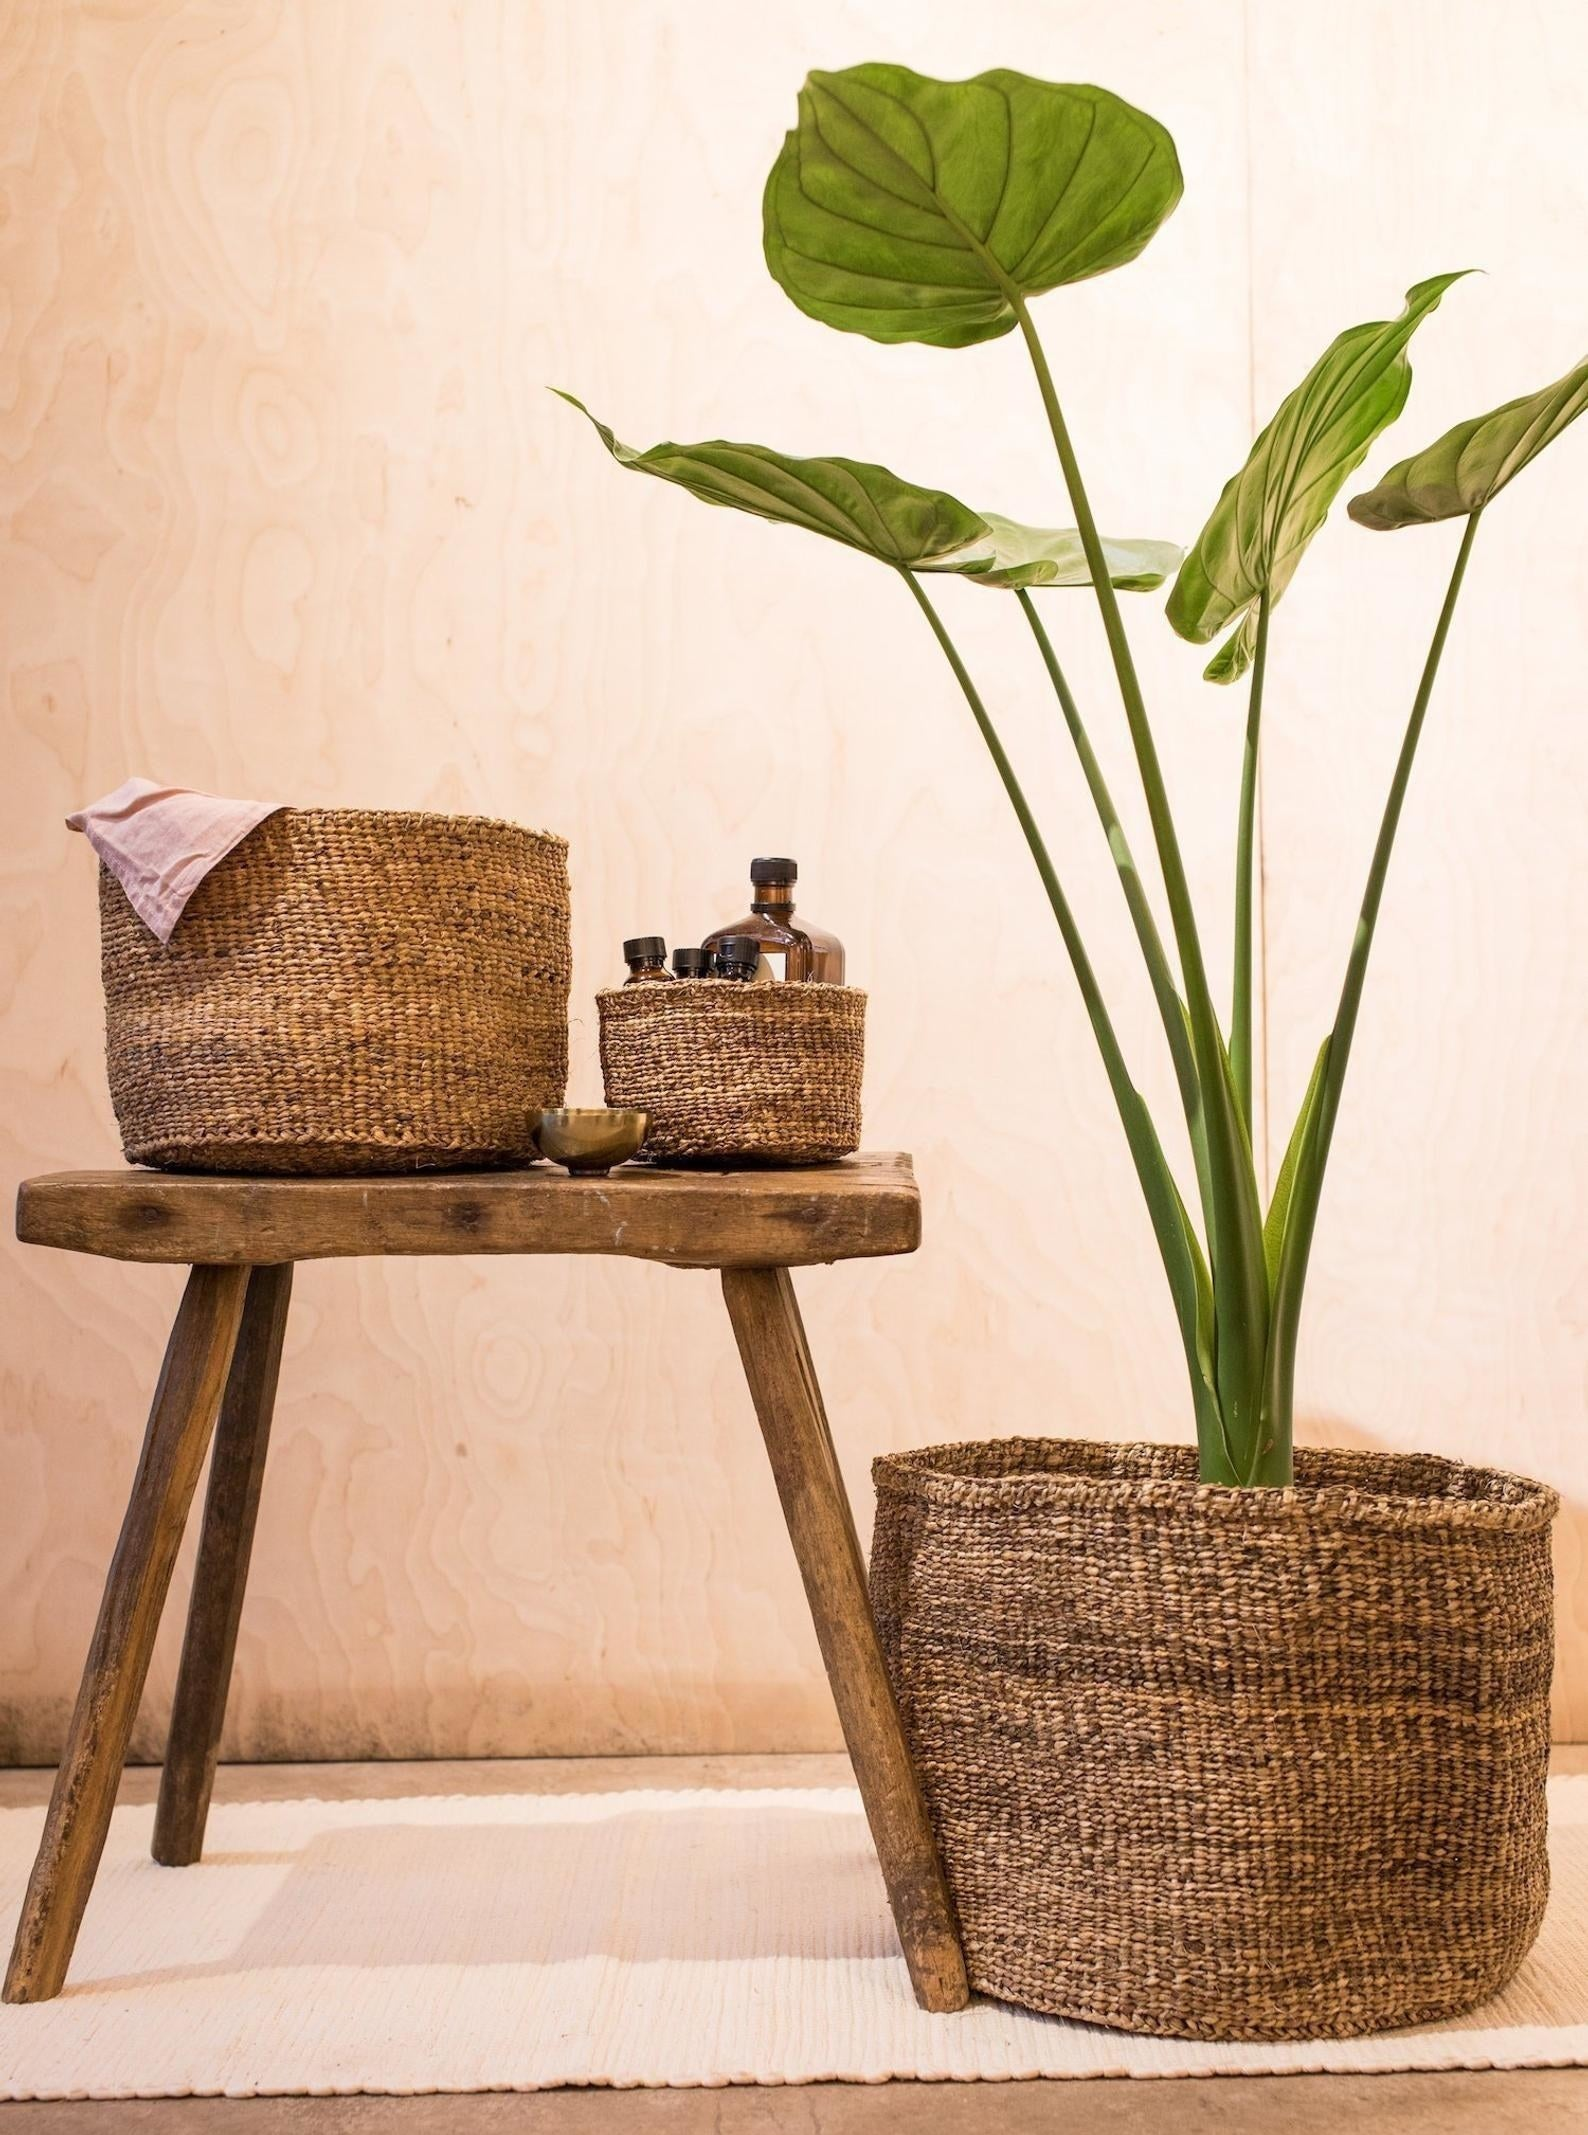 A large, woven brown planter made from banana tree bark holding a tall plant